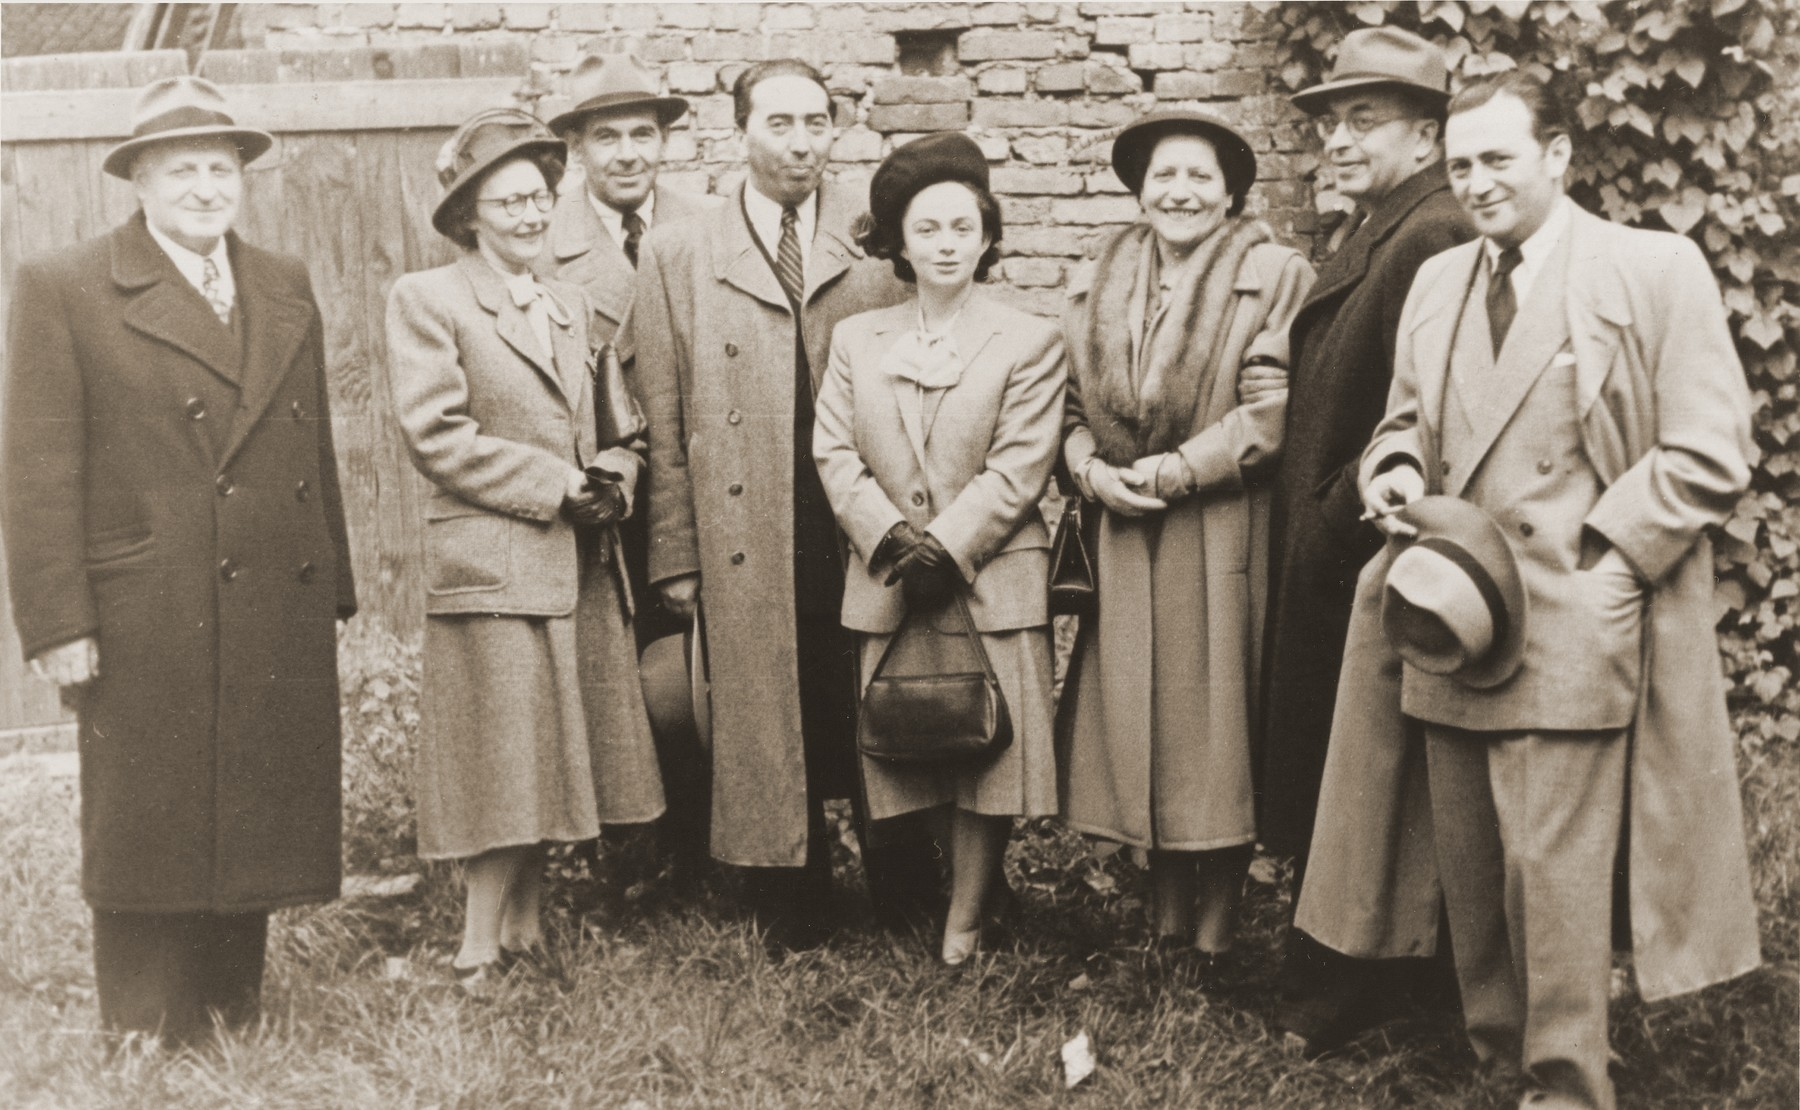 Members of the staff of the Rothschild Hospital pose on the hospital's grounds.  From left to right are Abel Birman, Mrs. and Mr. Winkler, Dr. and Mrs. Jonas and Bella (also known as Beyle Schaechter-Gottesman) Gottesman and the head nurse.